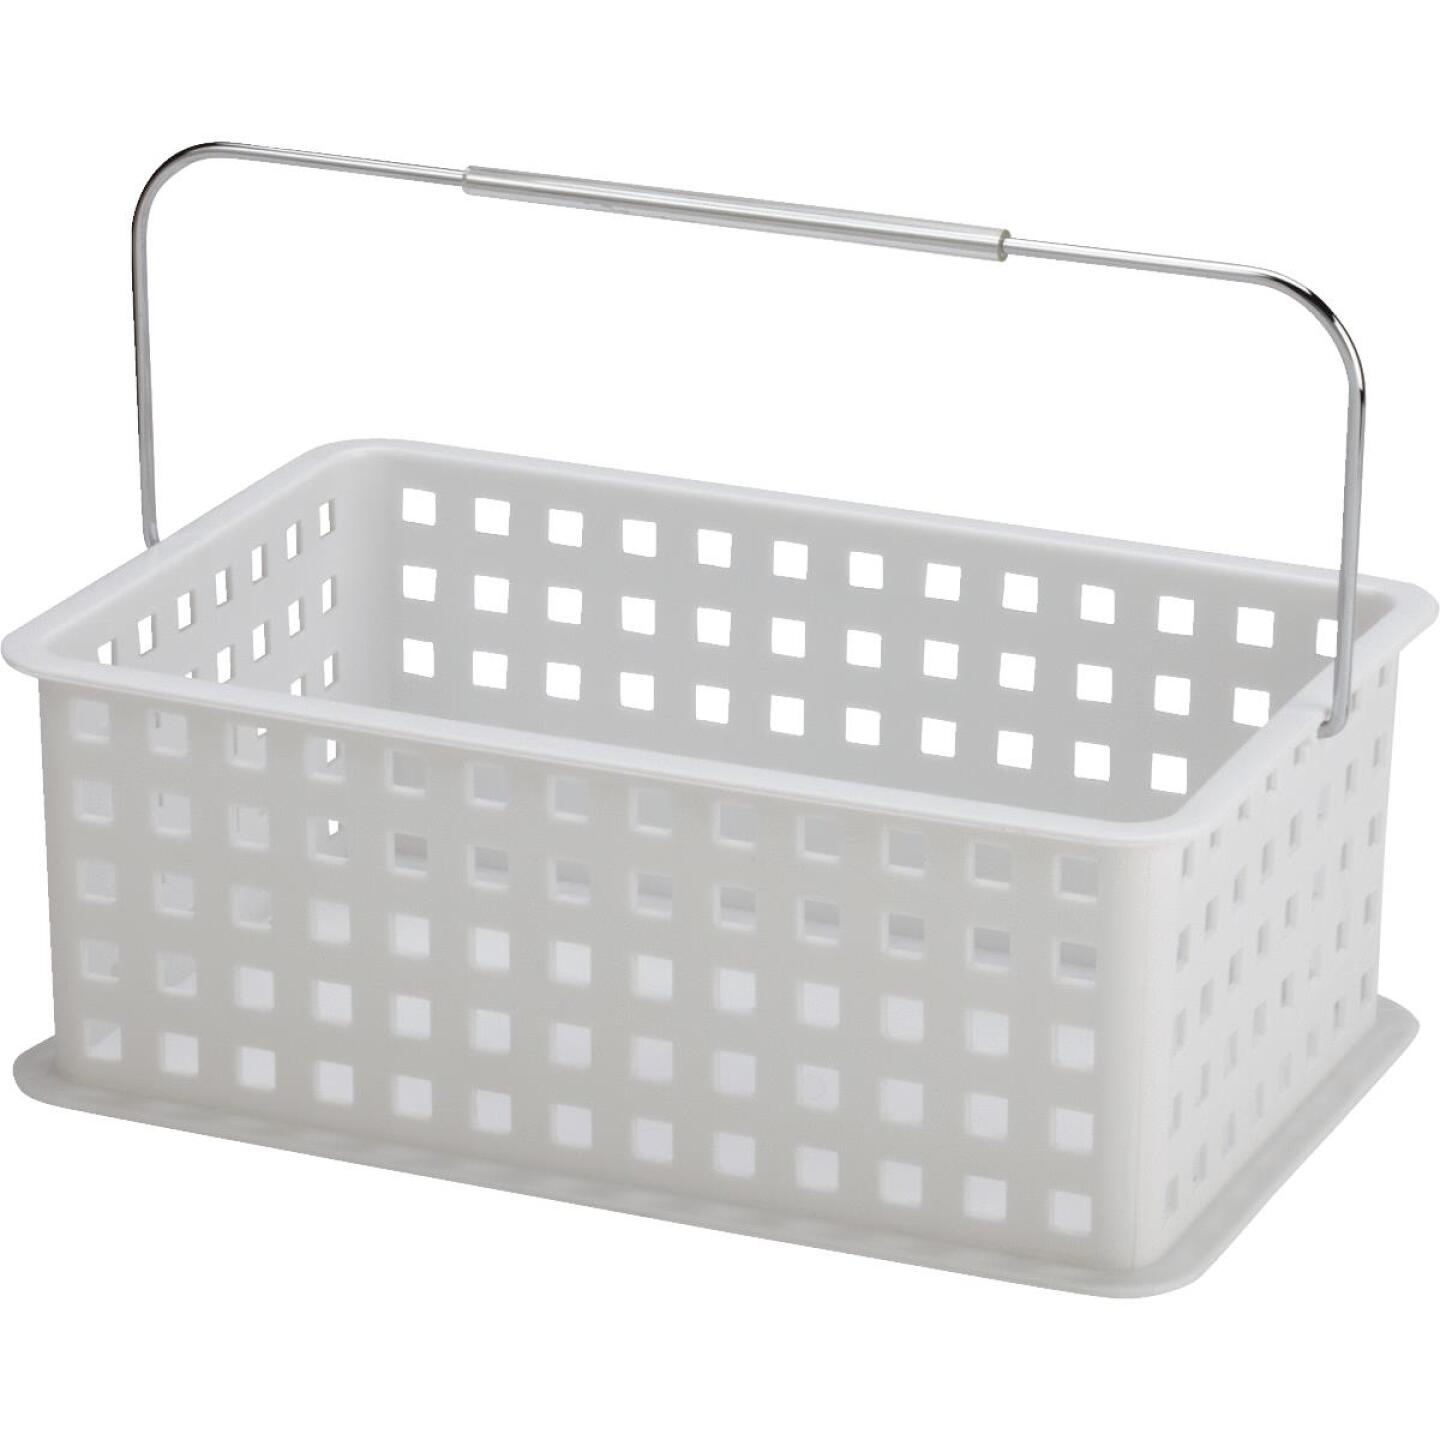 InterDesign Medium White Plastic Basket Image 1